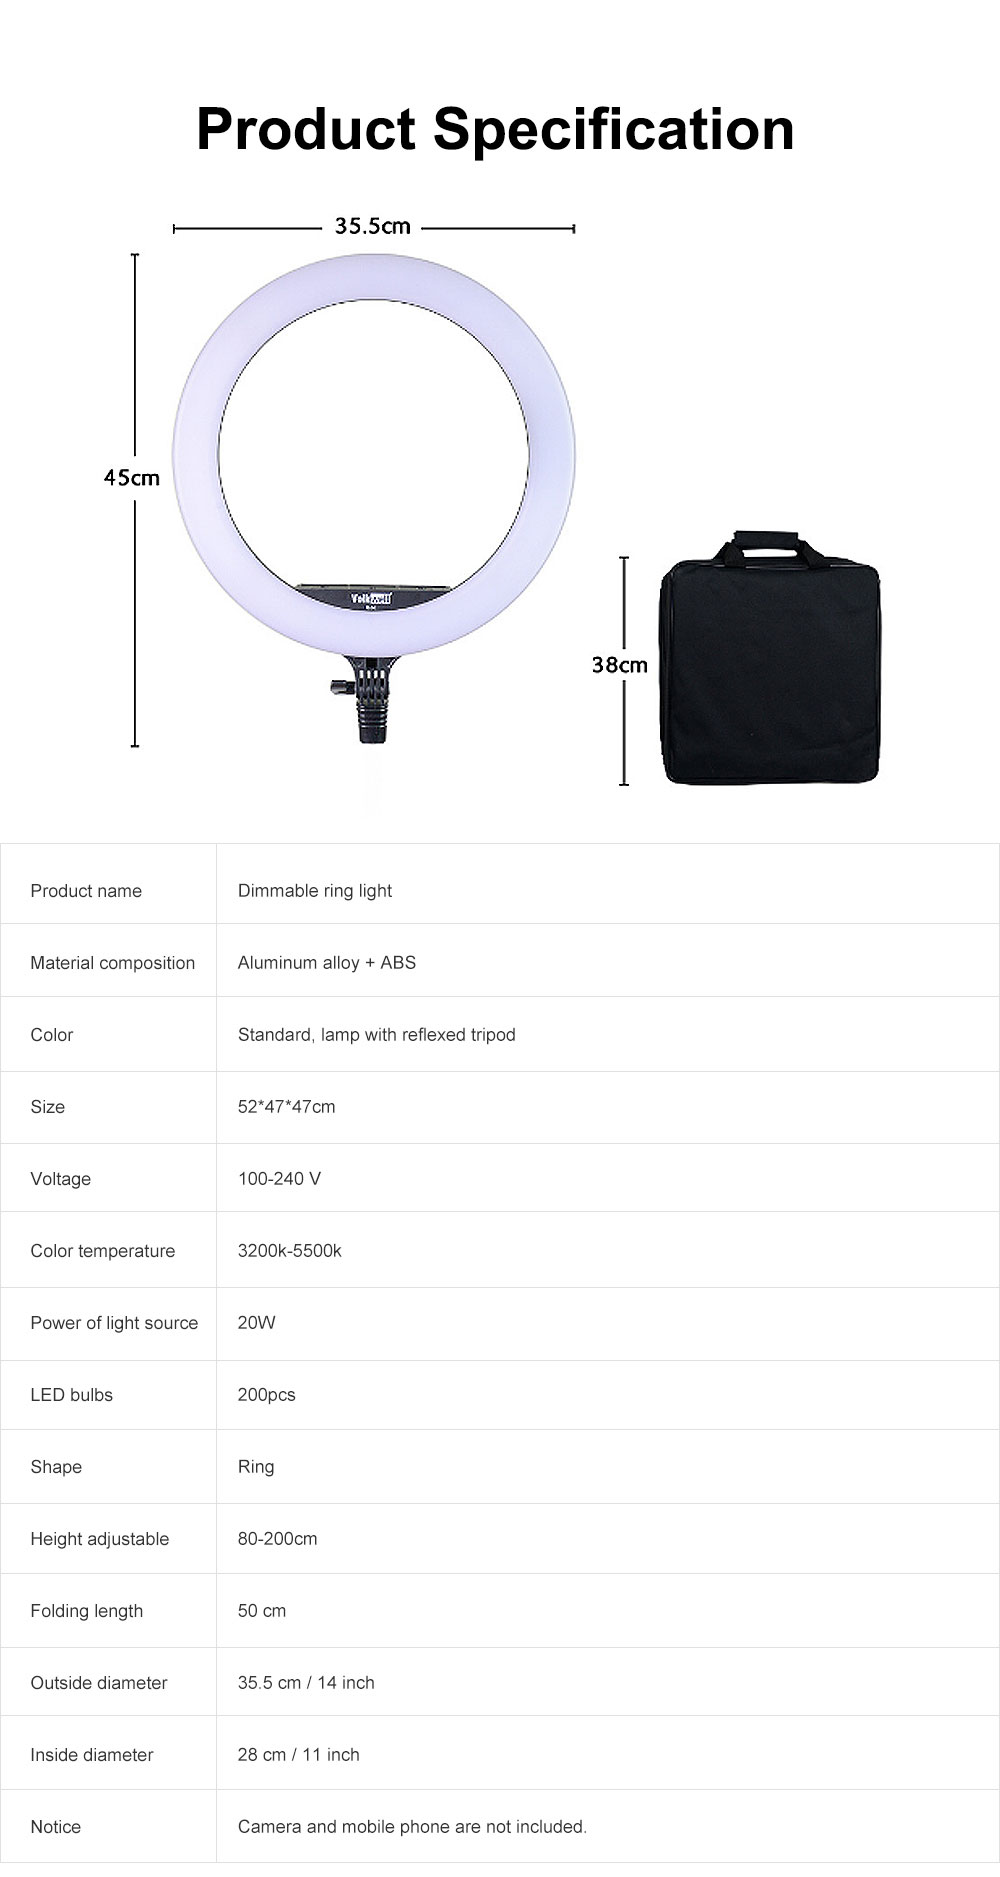 Selfie Desktop Ring Light, Dimmable Ring Light for YouTube Live Streaming, Portrait Photography, LED Round Fill Light 14 inches 5